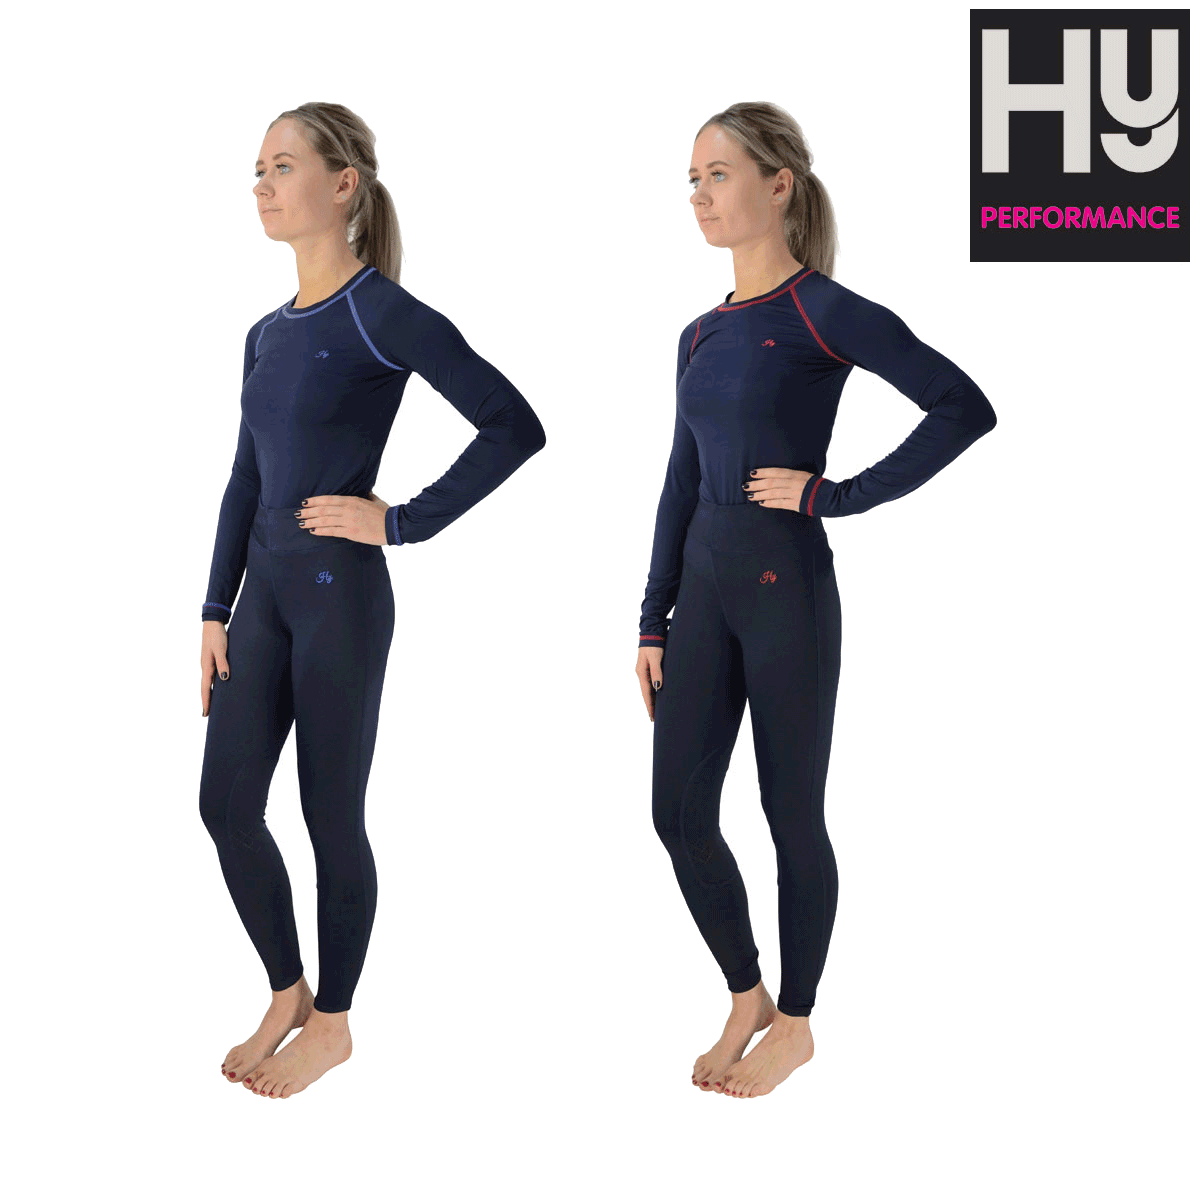 Hy Signature base layer